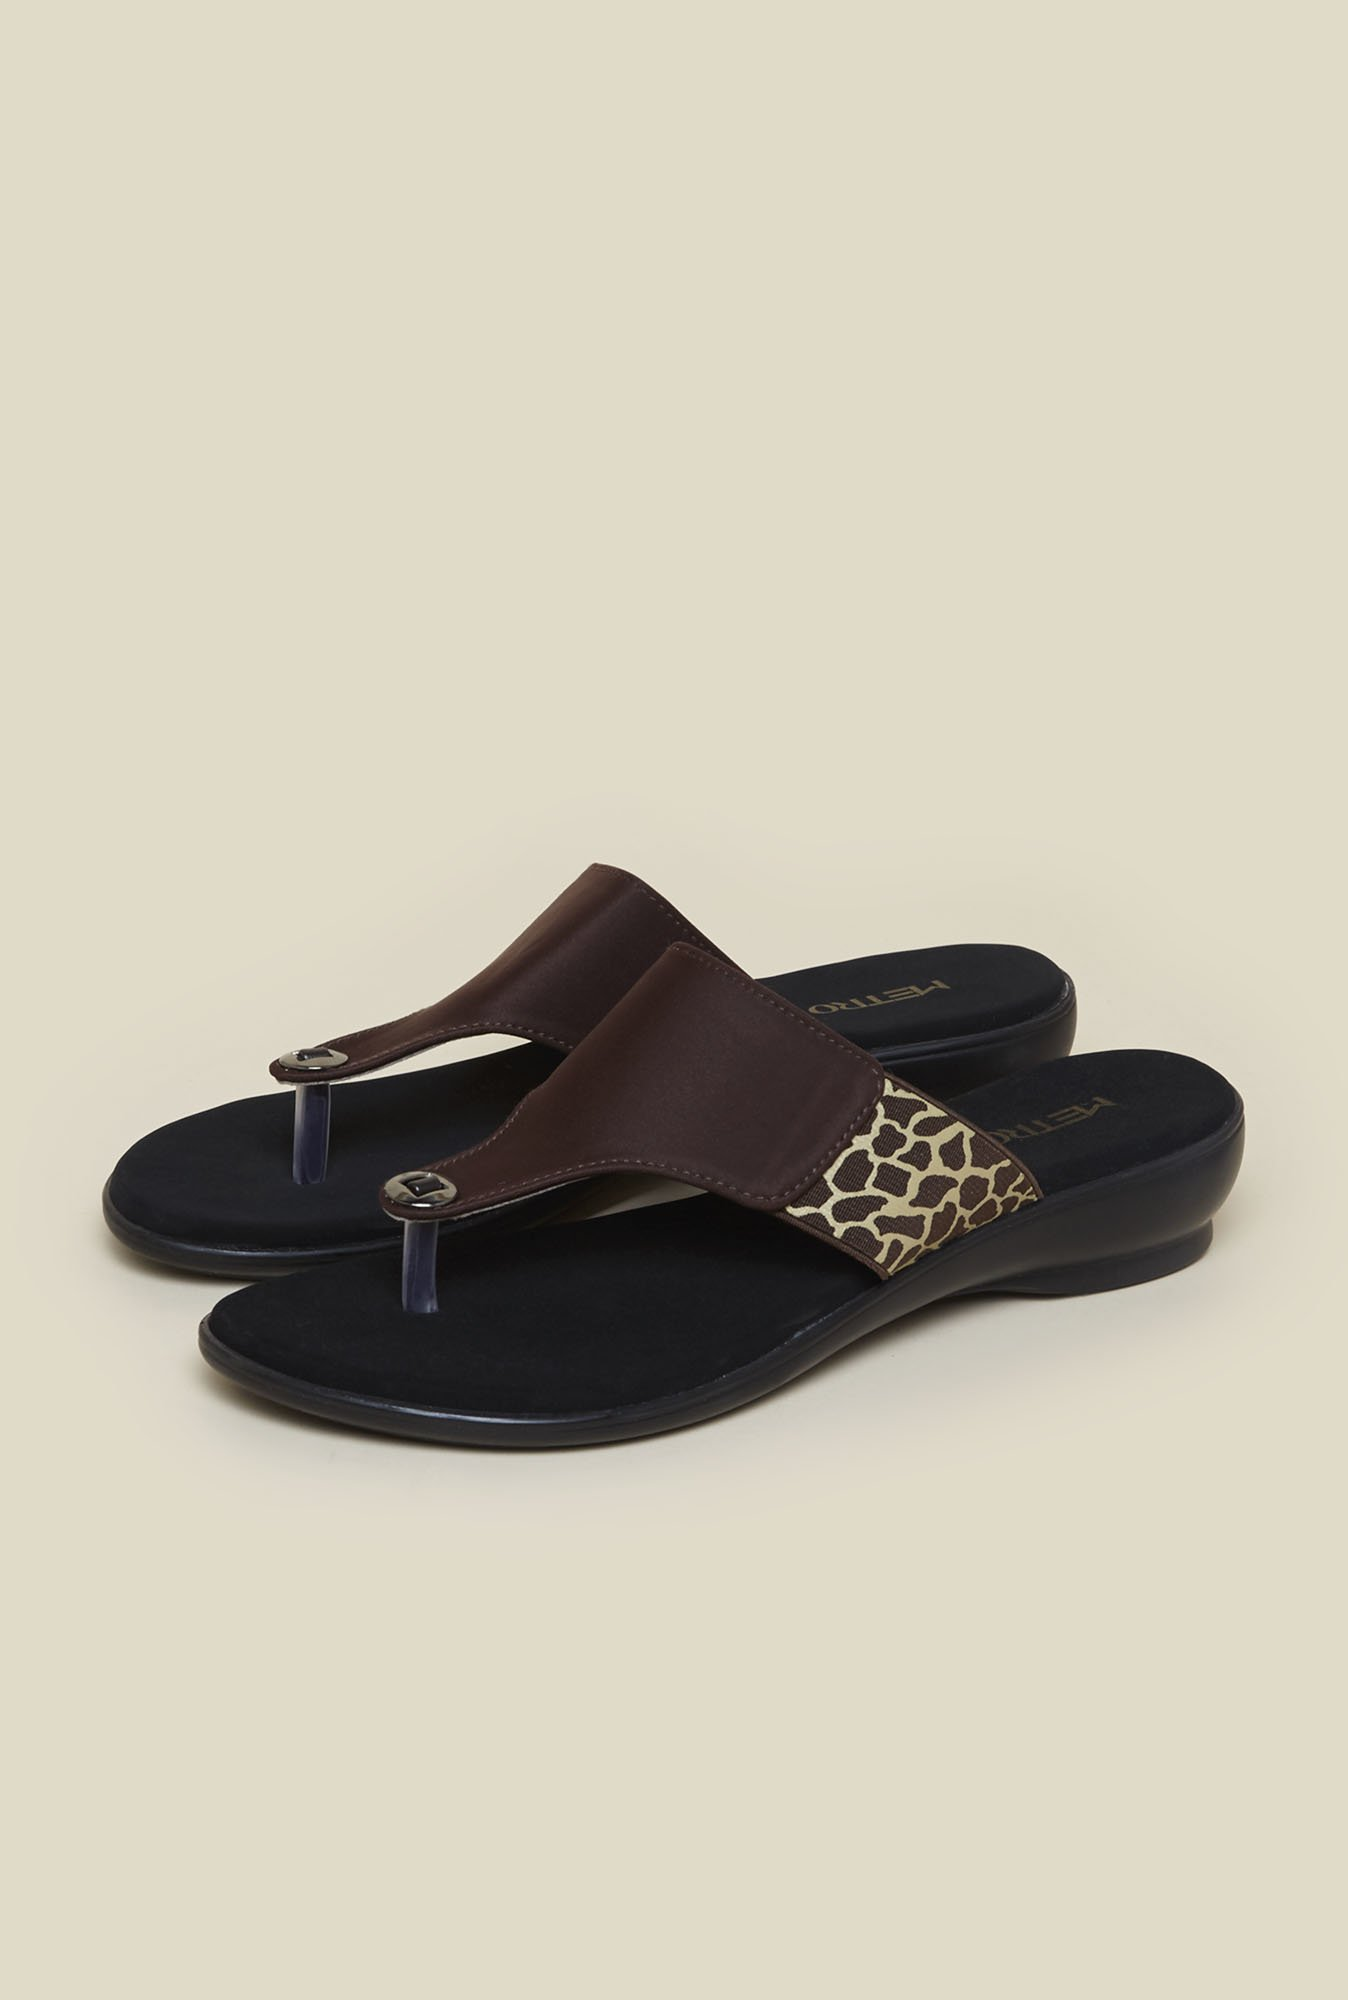 Metro Brown Animal Print Slip-On Sandals